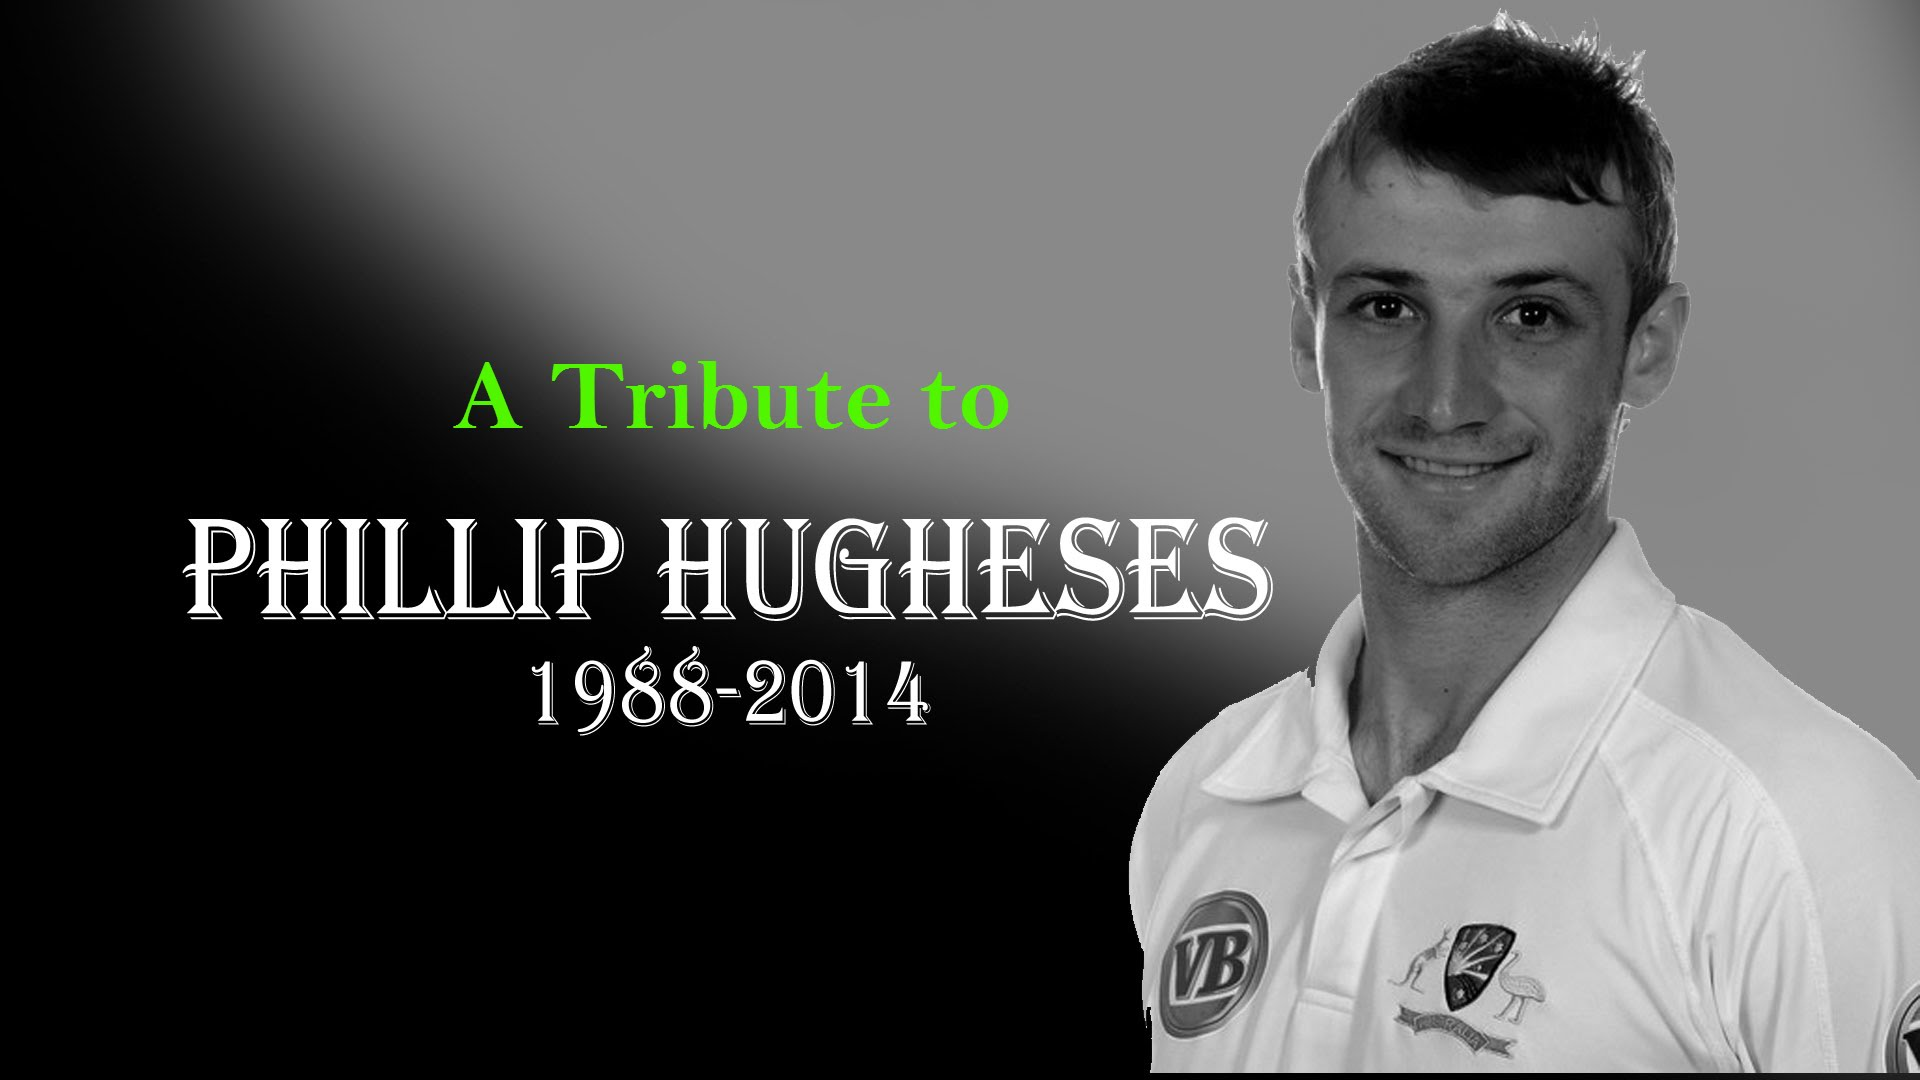 1920x1080 - Phillip Hughes Wallpapers 18